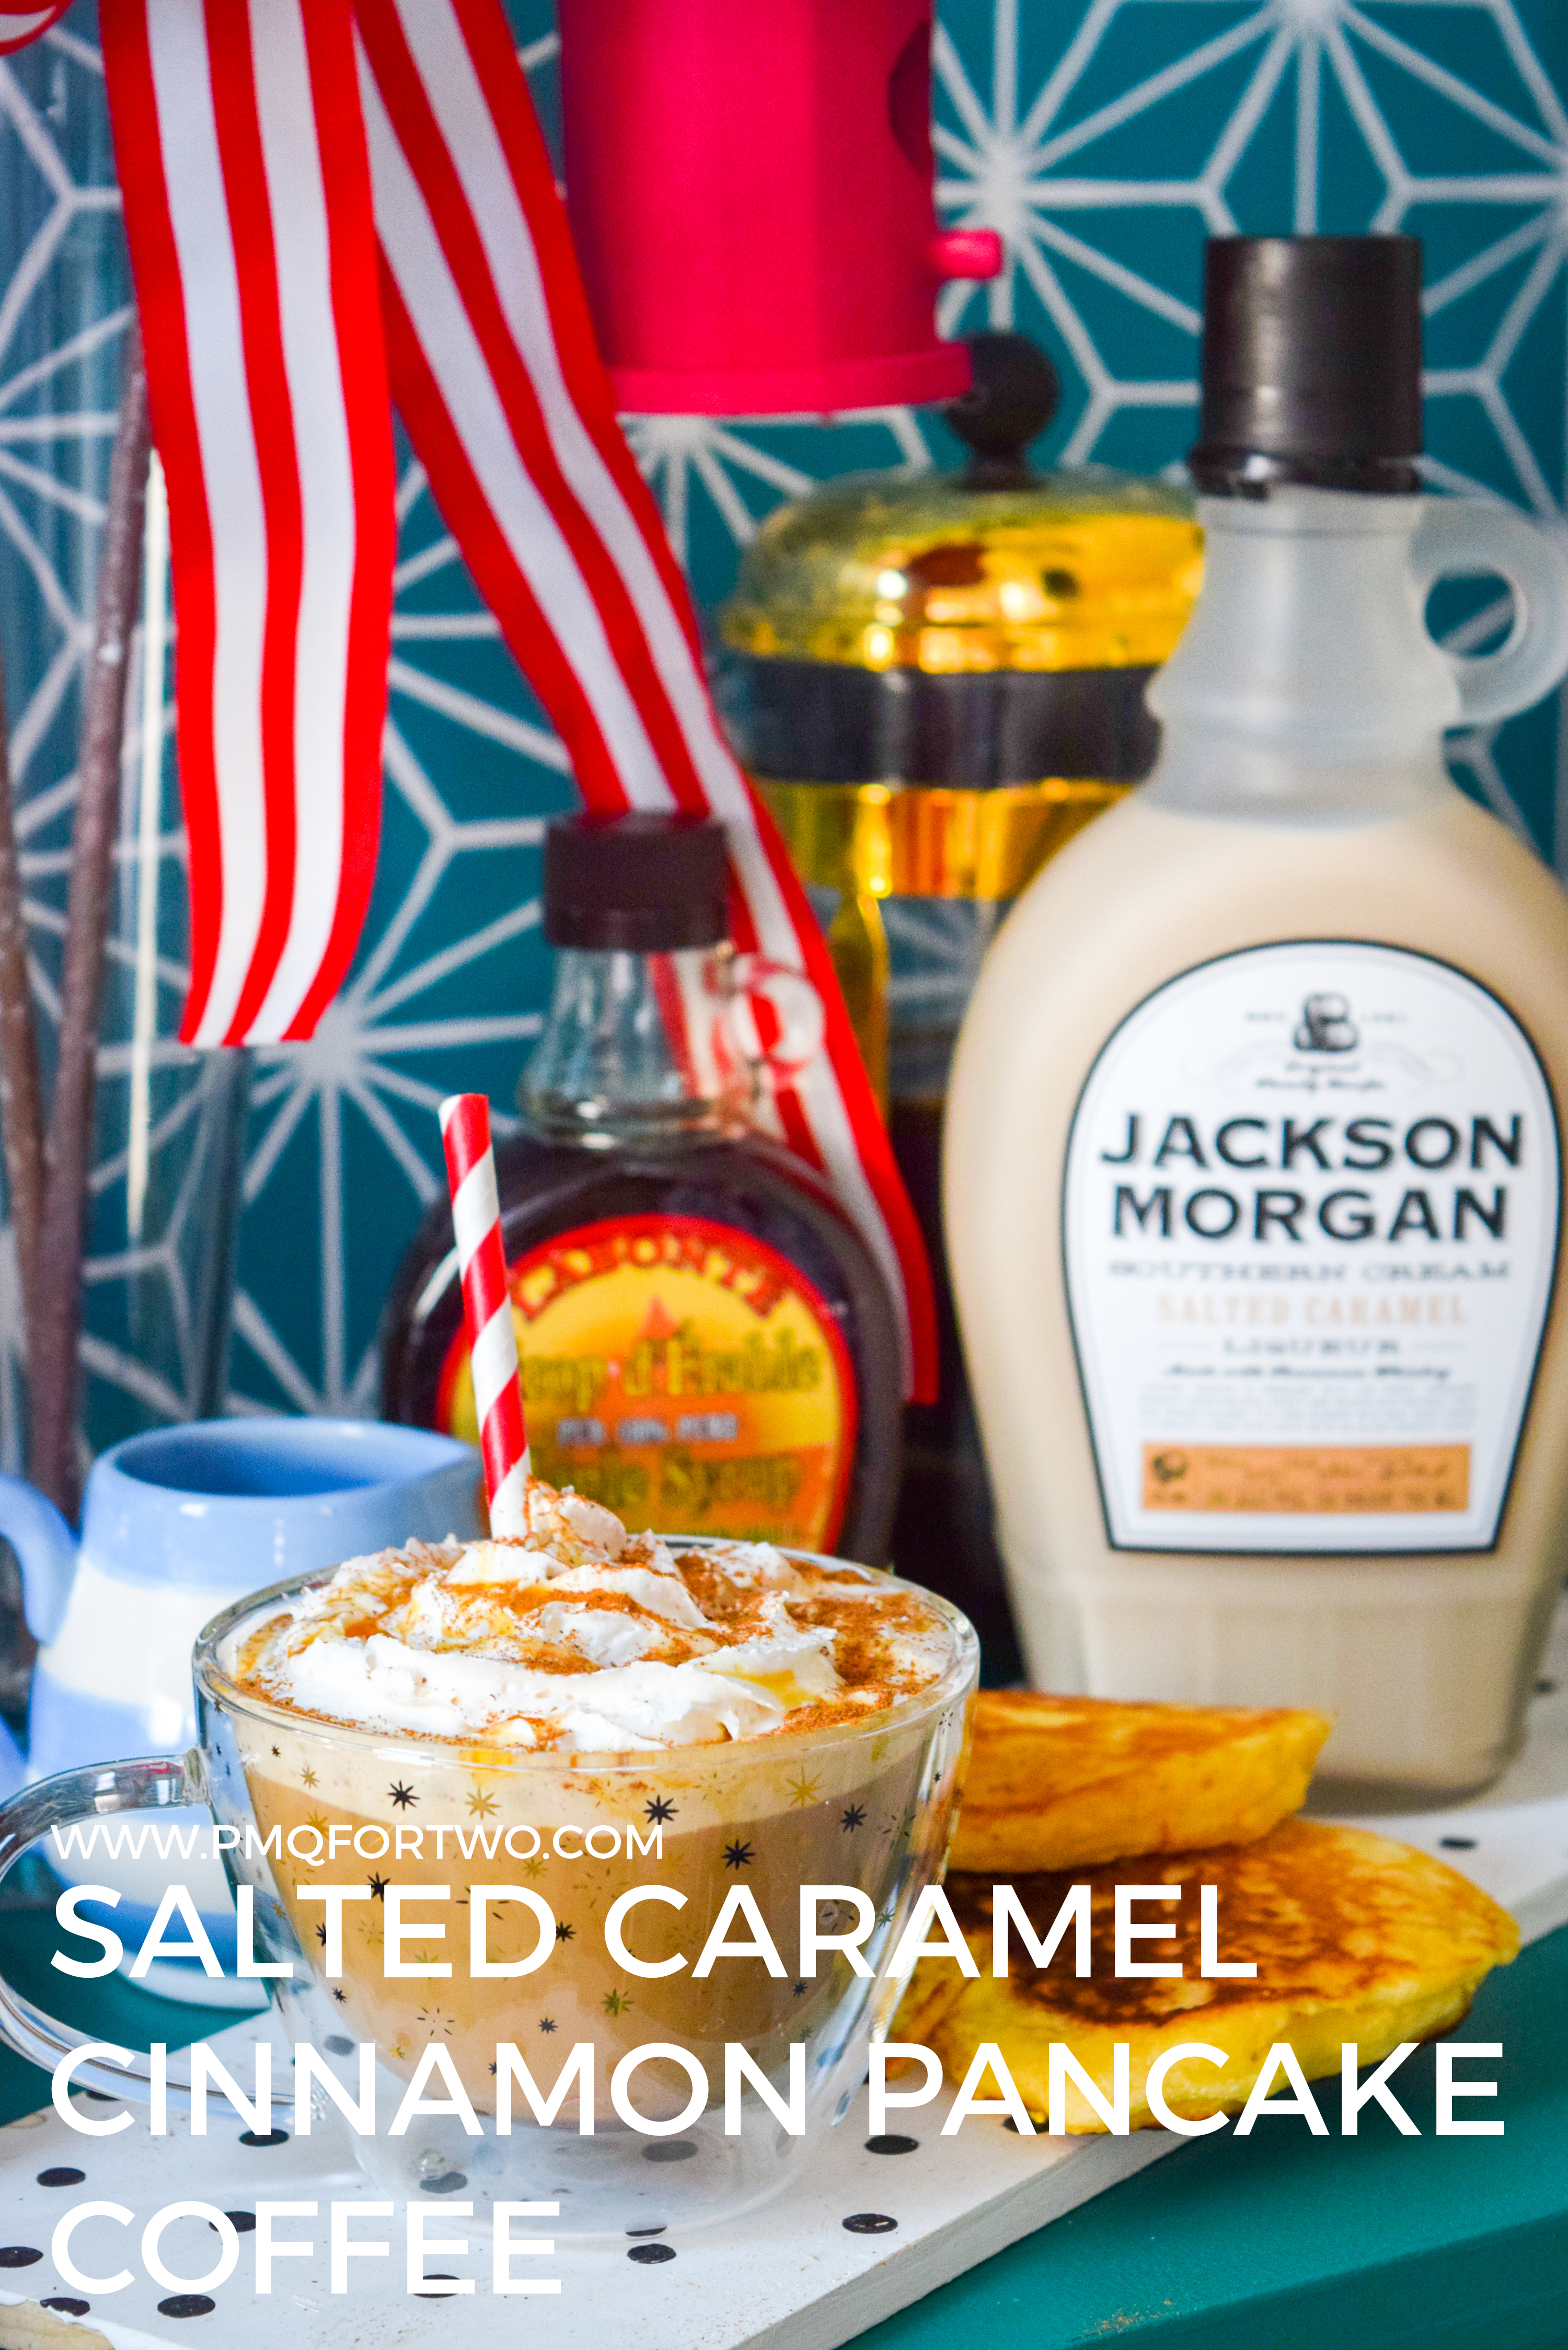 Winter weekend brunches are fab and all, but so is a spiked coffee. And because January feels like it can drag on into March (longest month of the year anyone?) I figured a Salted Caramel Cinnamon Pancake Coffee was in order. #jacksonmorgan #saltedcaramel